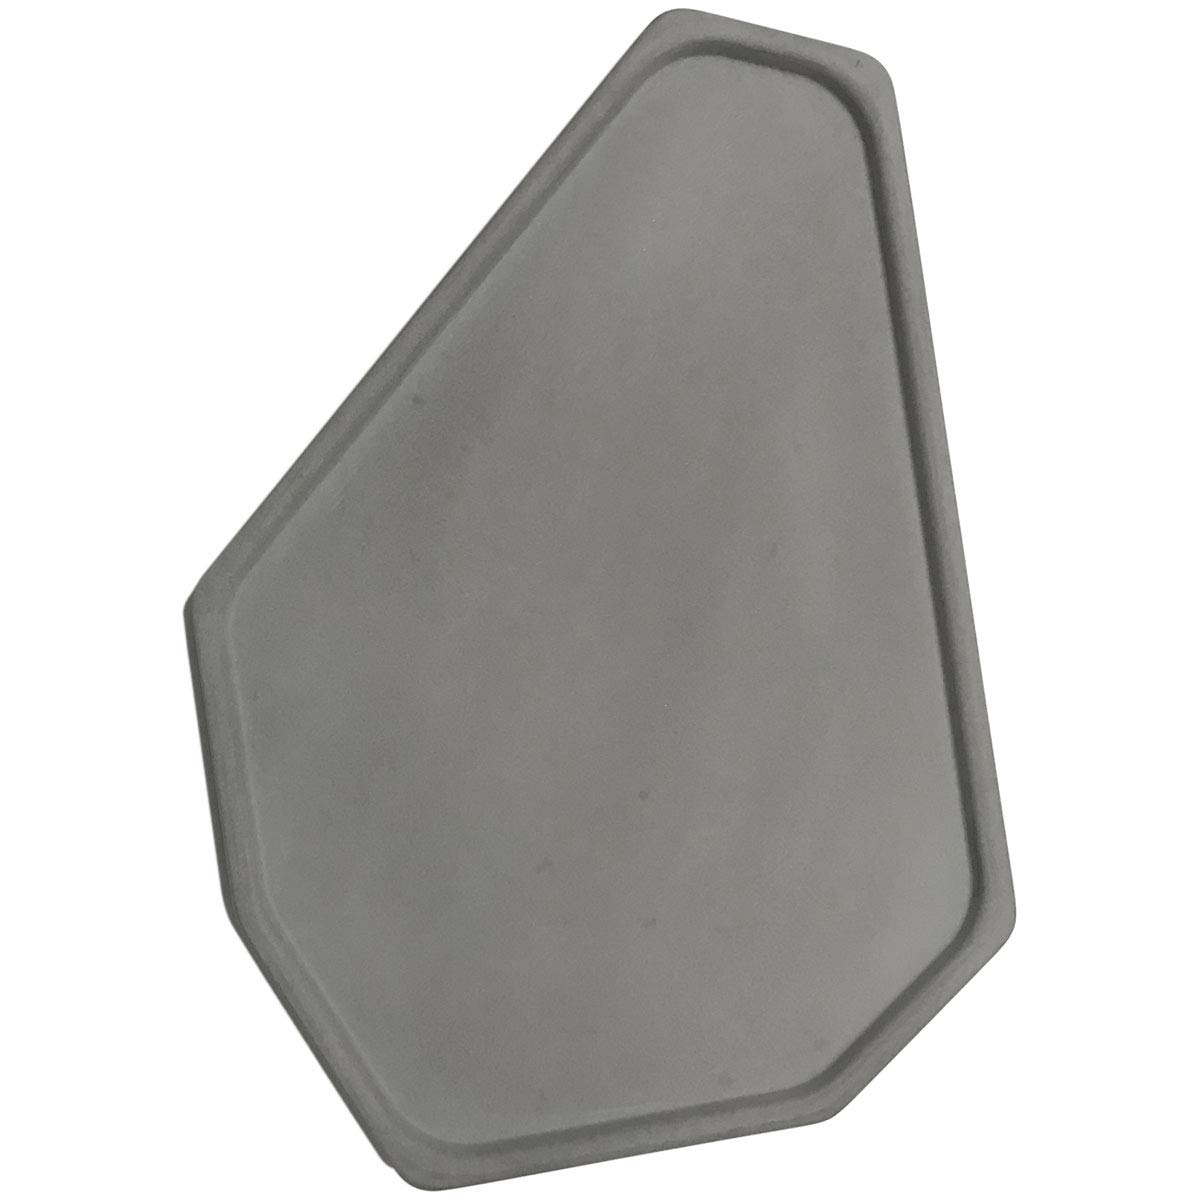 FREELOVE Concrete Serving Tray, Cement Serving Platter Bathroom Holder Vanity Trays Jewelry Dish Cosmetics Organizer Towel Tray Tea Tray (Grey, Polygon 7'' by 9.6'') by FREELOVE